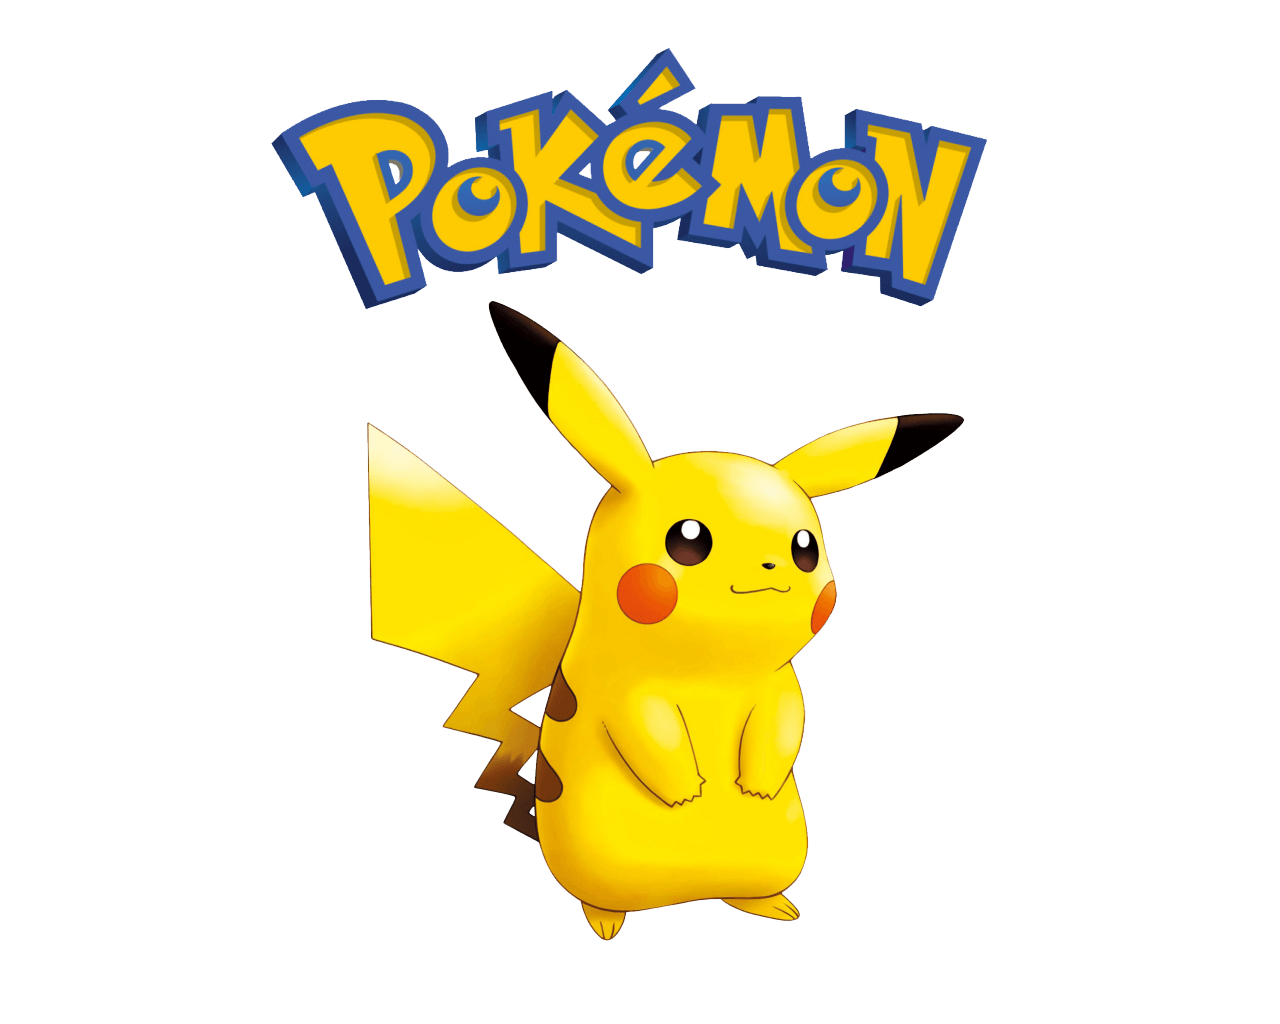 Pokemon Pikachu Wallpapers